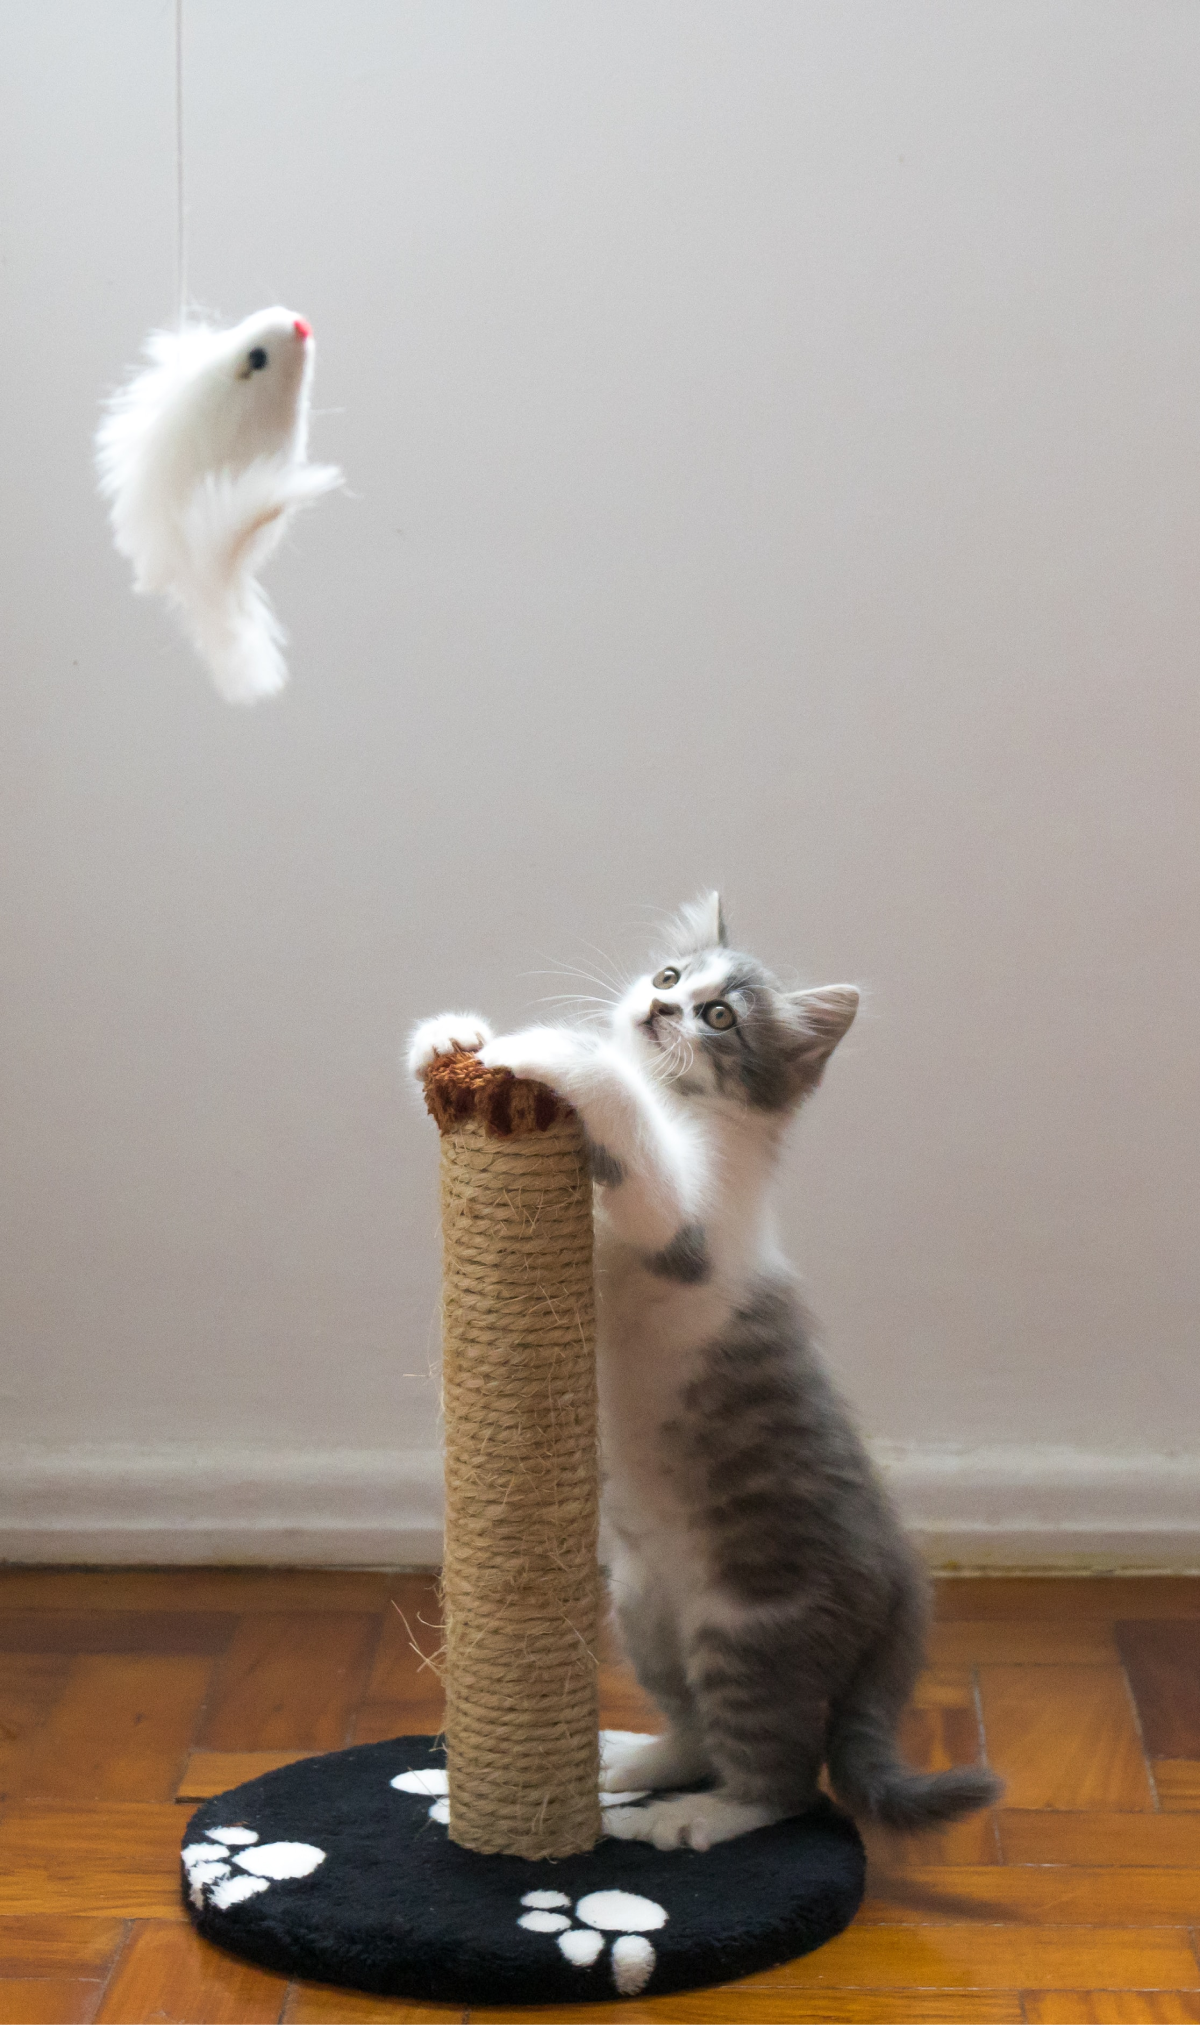 Top Tips on Kitten Care for the First Few Weeks